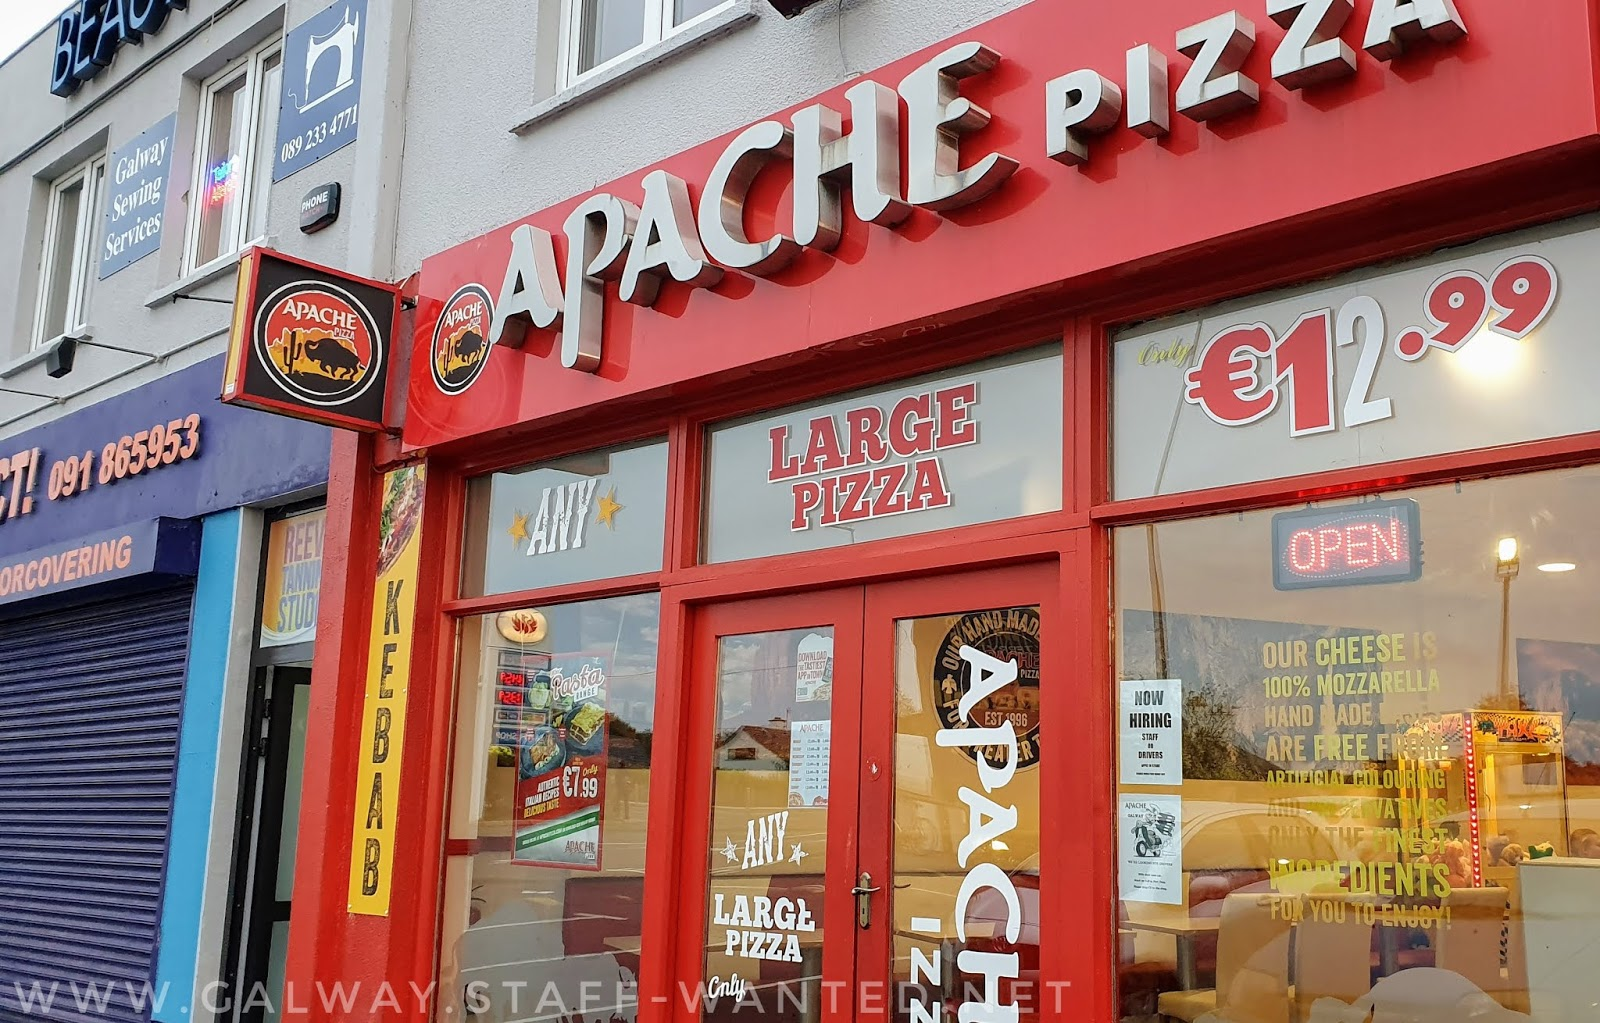 Apache pizza shopfront - our cheese 100% mozzarella, hand-made pizza base are free from artificial colouring and preservatives - red LED open sign - large pizza for €12.99